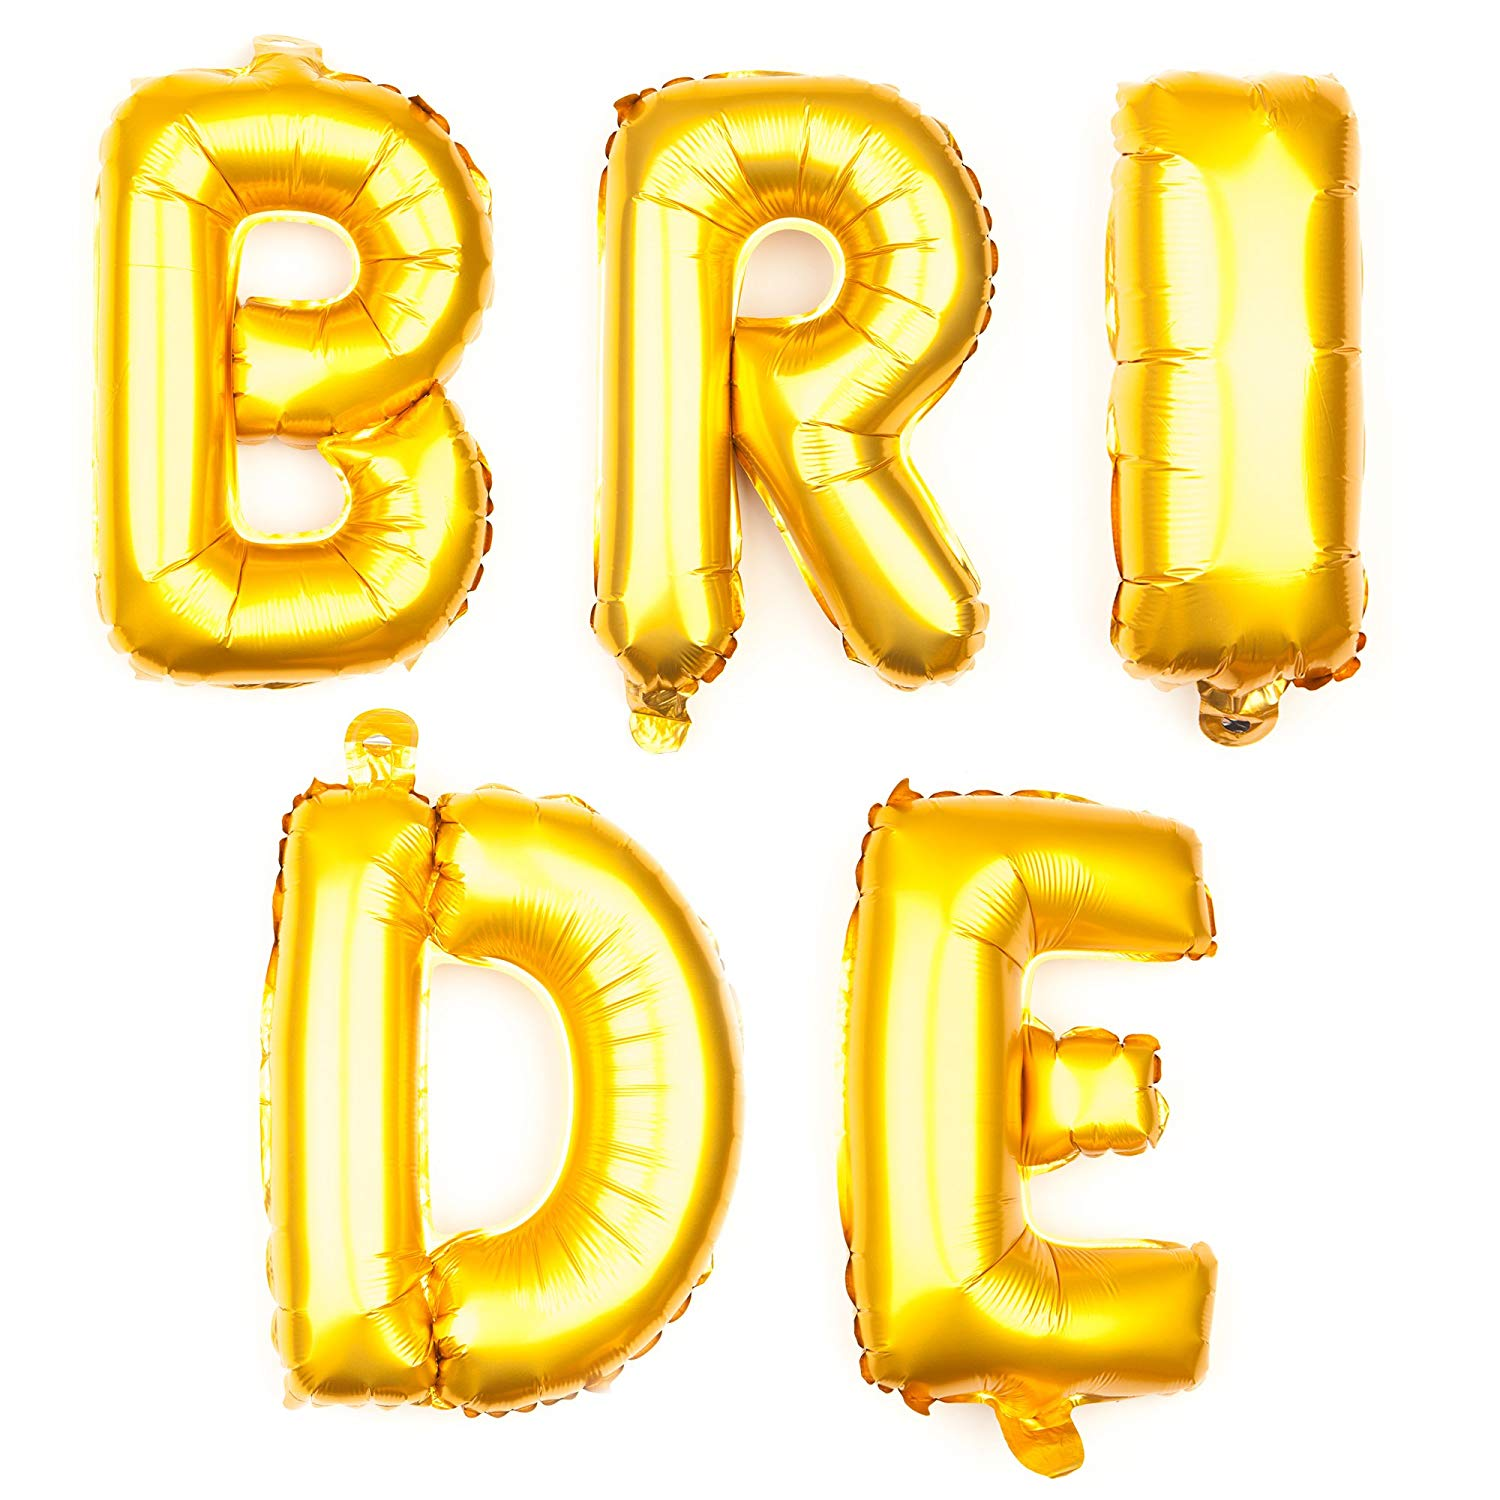 BRIDE Letter Balloons - 35 Inch Gold